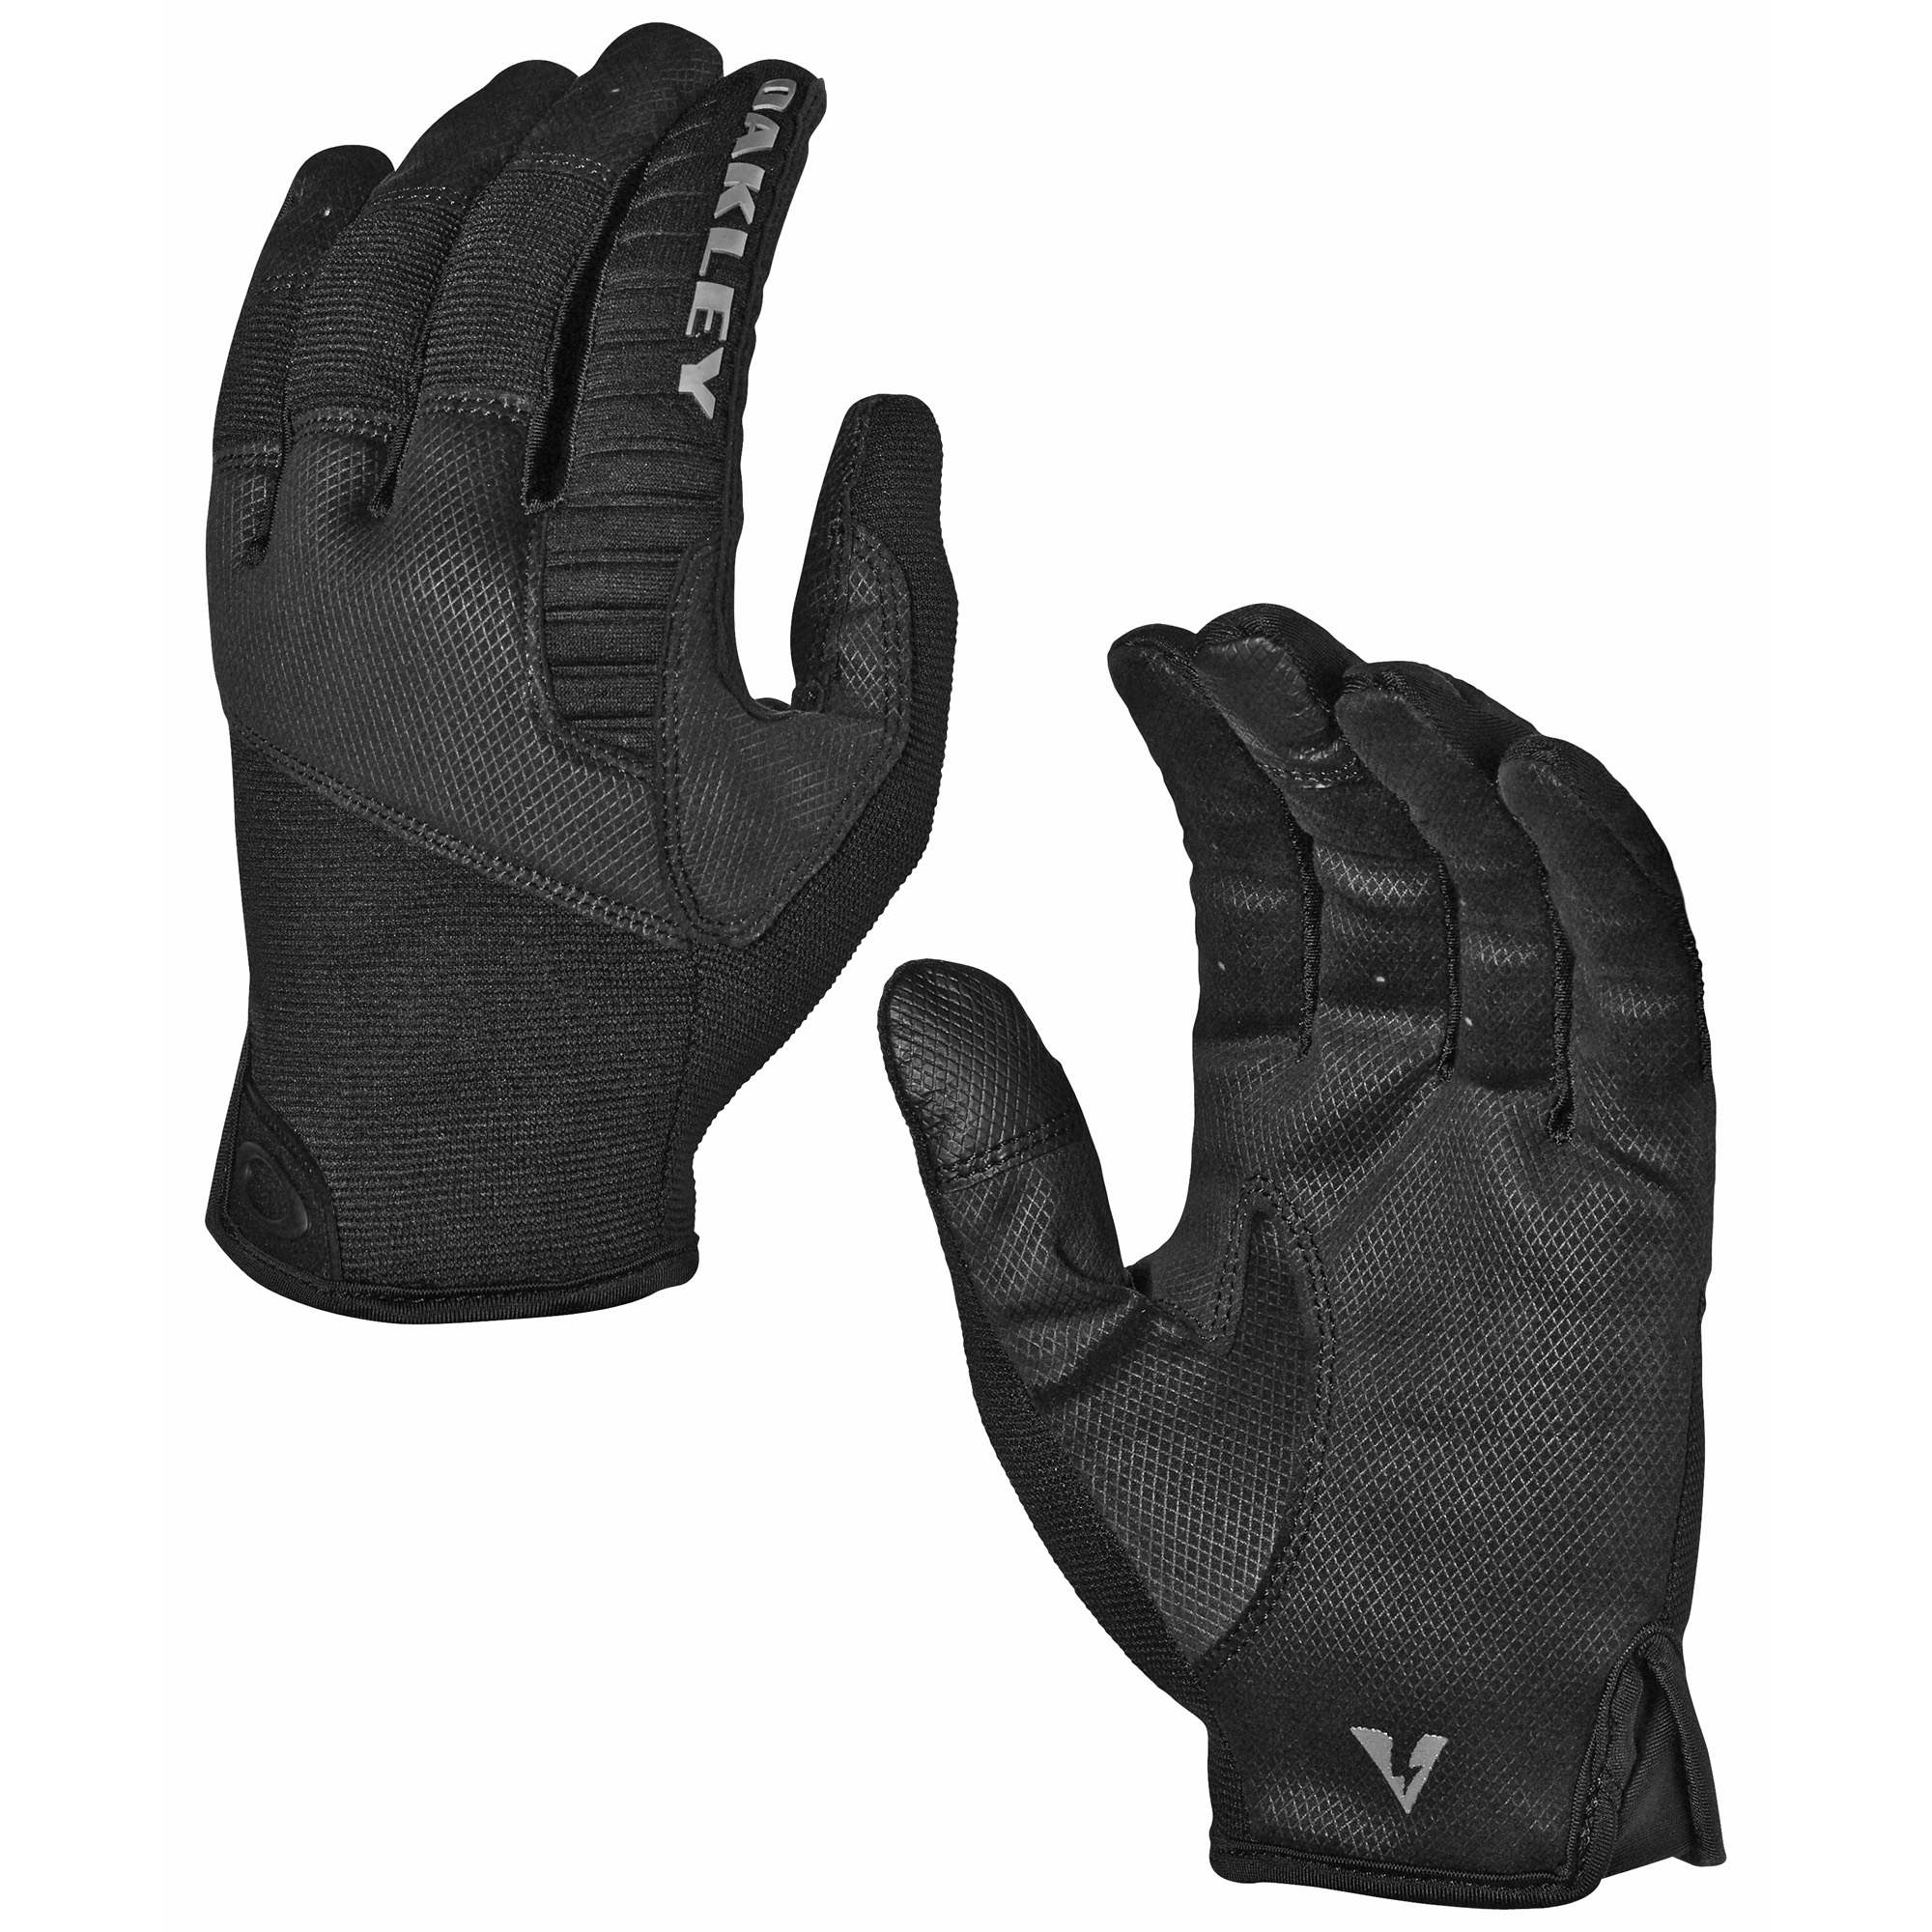 "The protective Factory Lite Tactical Gloves are built to withstand the rigors of any rough-and-tumble activity. The lightweight ribspan construction of these Oakley gloves combine with strategically placed suede and molded panels to provide comfort"" dexterity a barrier between you and equipment that can cause injury."